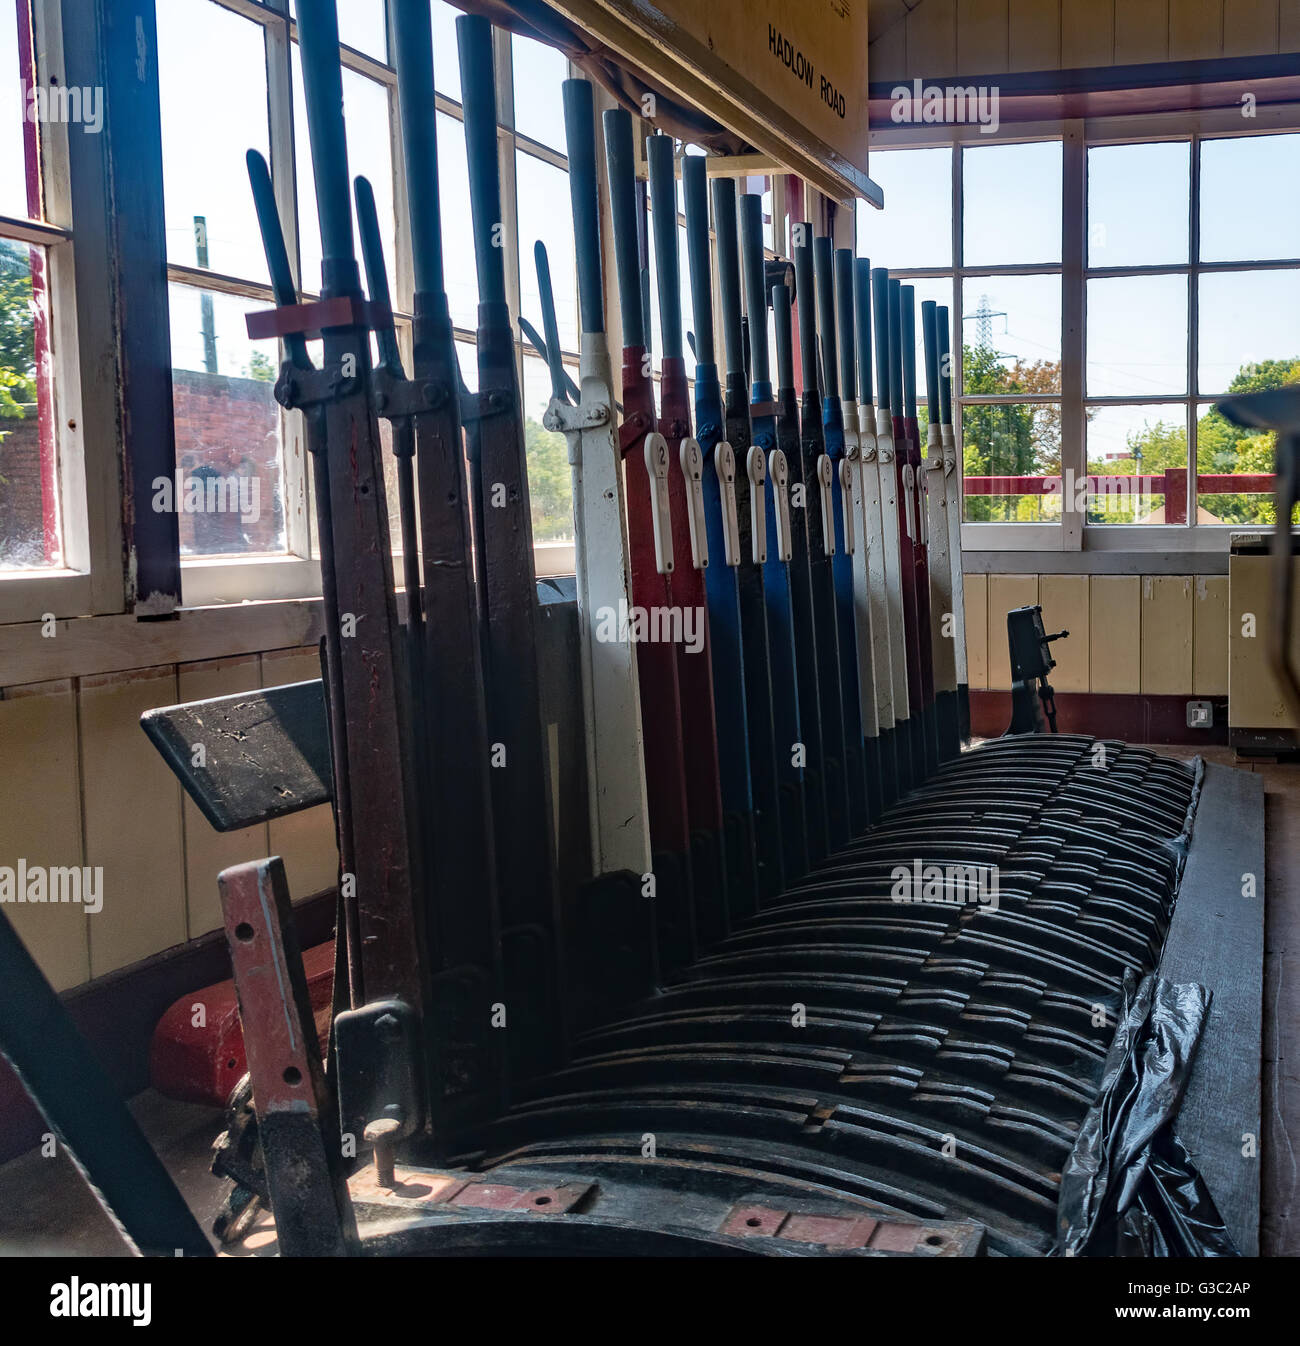 Old style railway signal box control levers - Stock Image